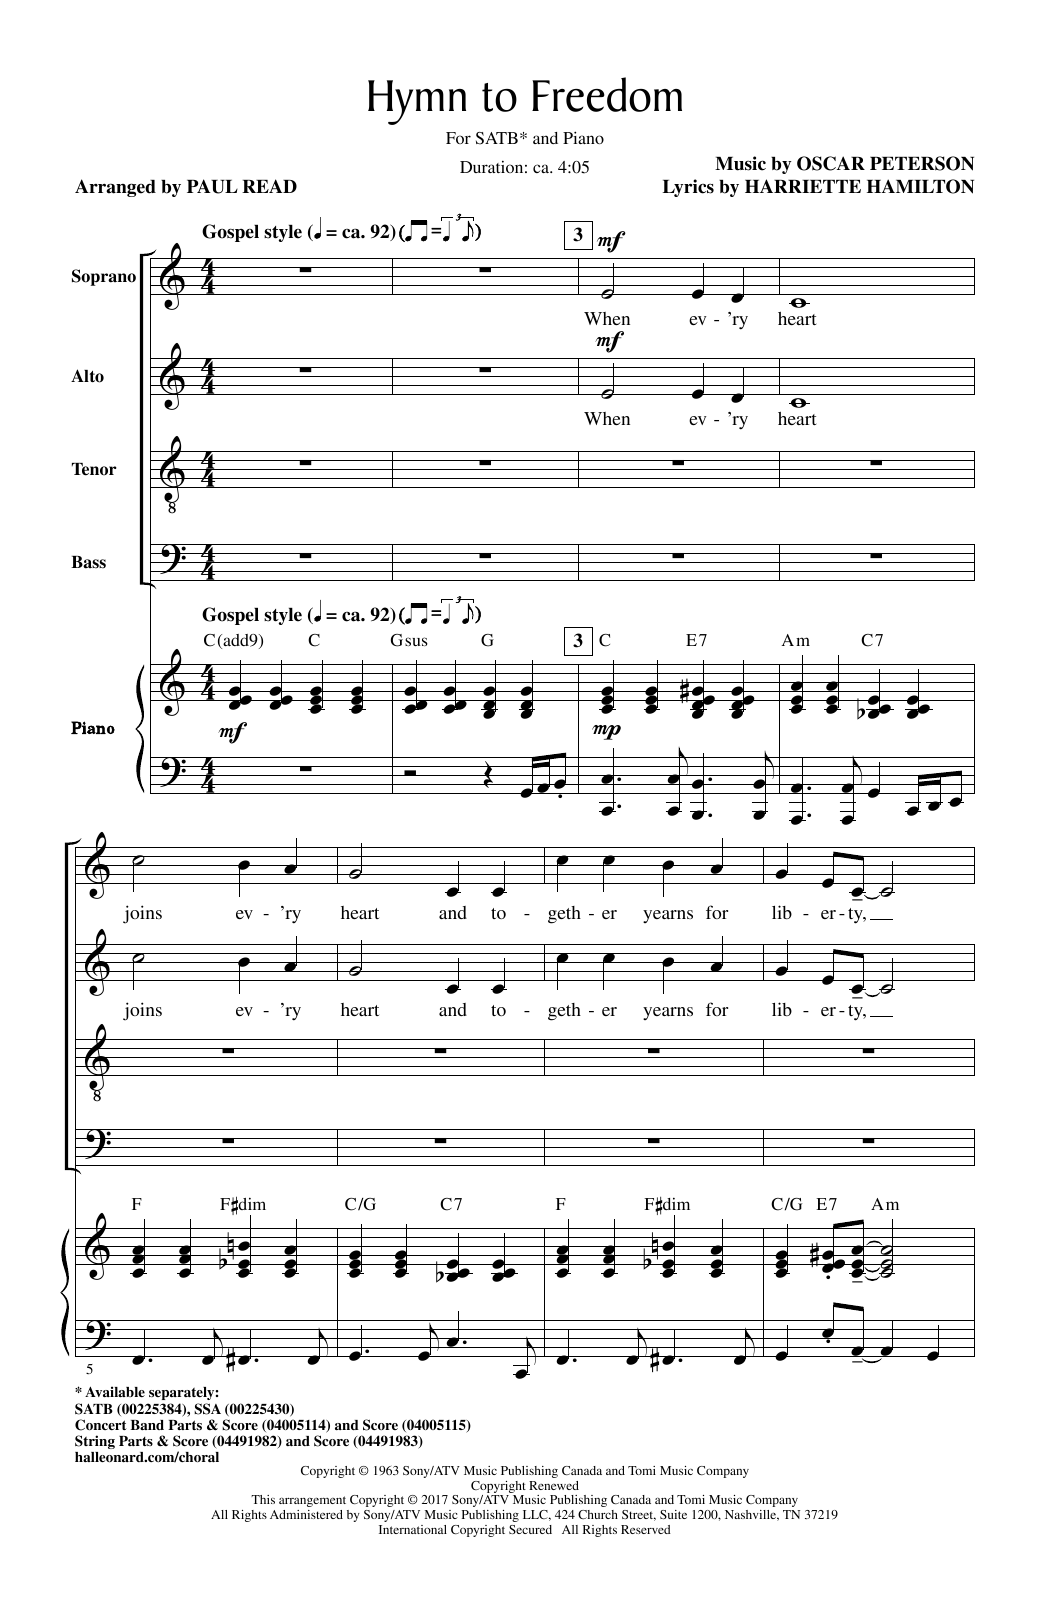 Hymn To Freedom (arr. Paul Read) (SATB Choir)